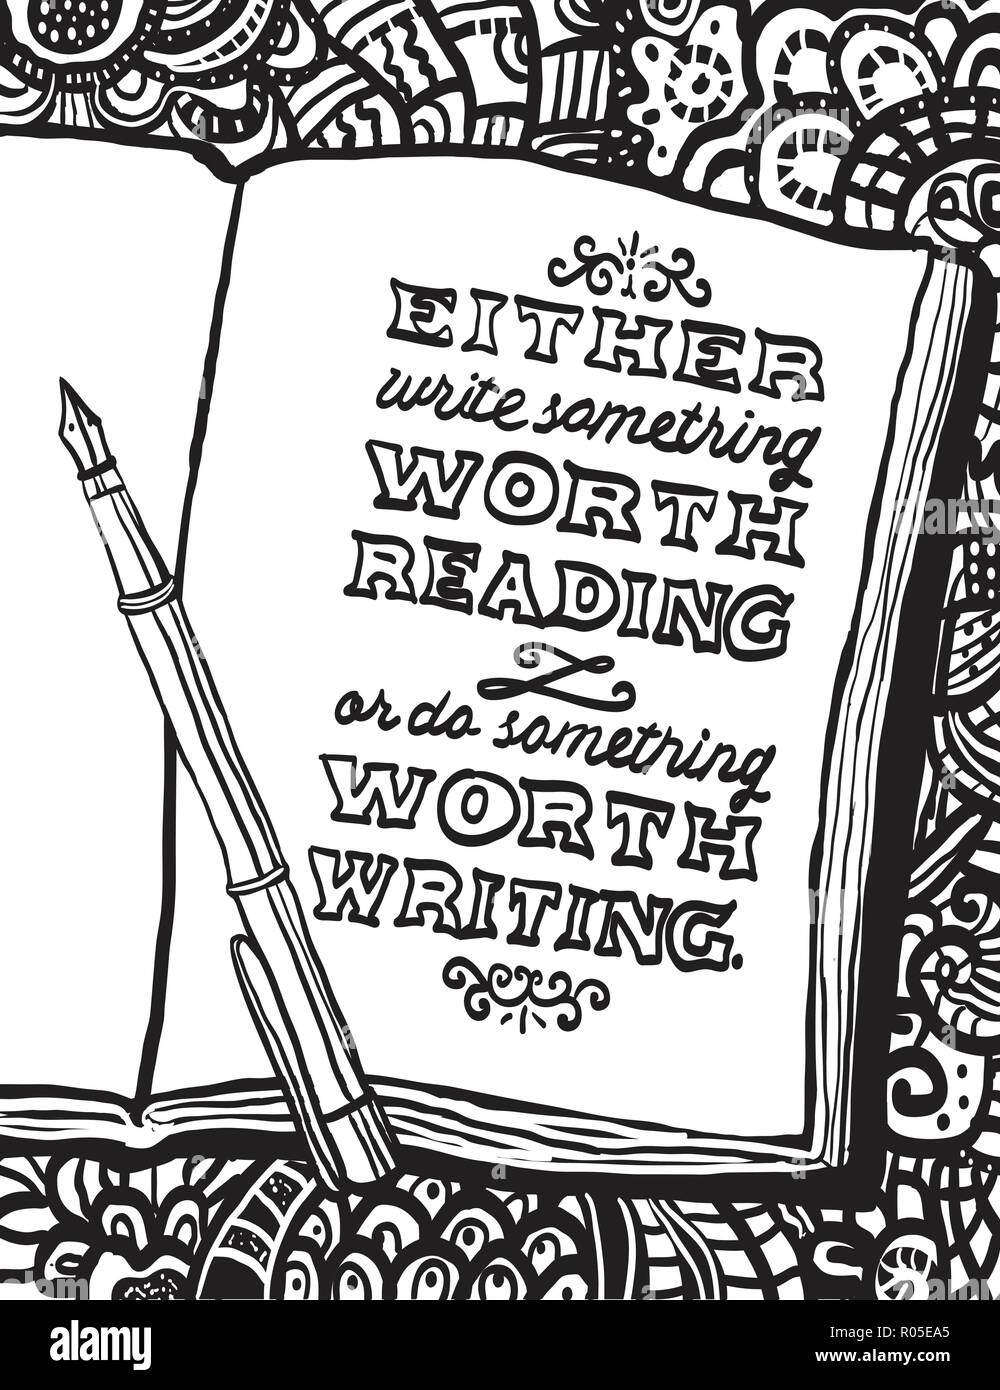 Illustration with notebook, pen and Benjamin Franklin's quote 'Either write something worth reading or do something worth writing.' Doodle background. - Stock Vector